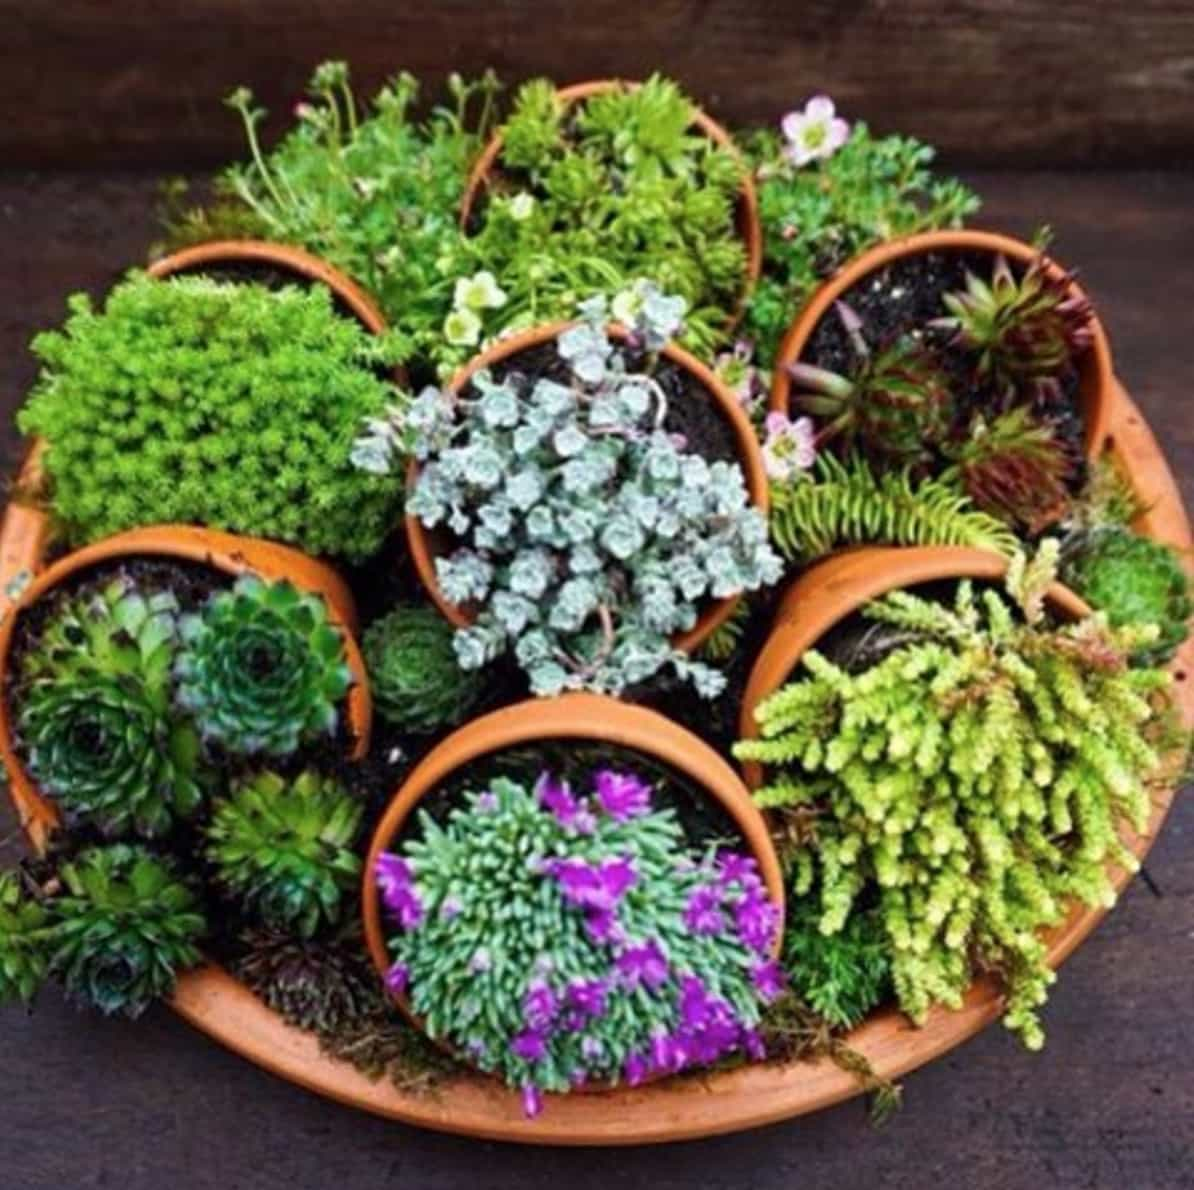 Clay Pot Planter Ideas You Ll Love This Inspiration